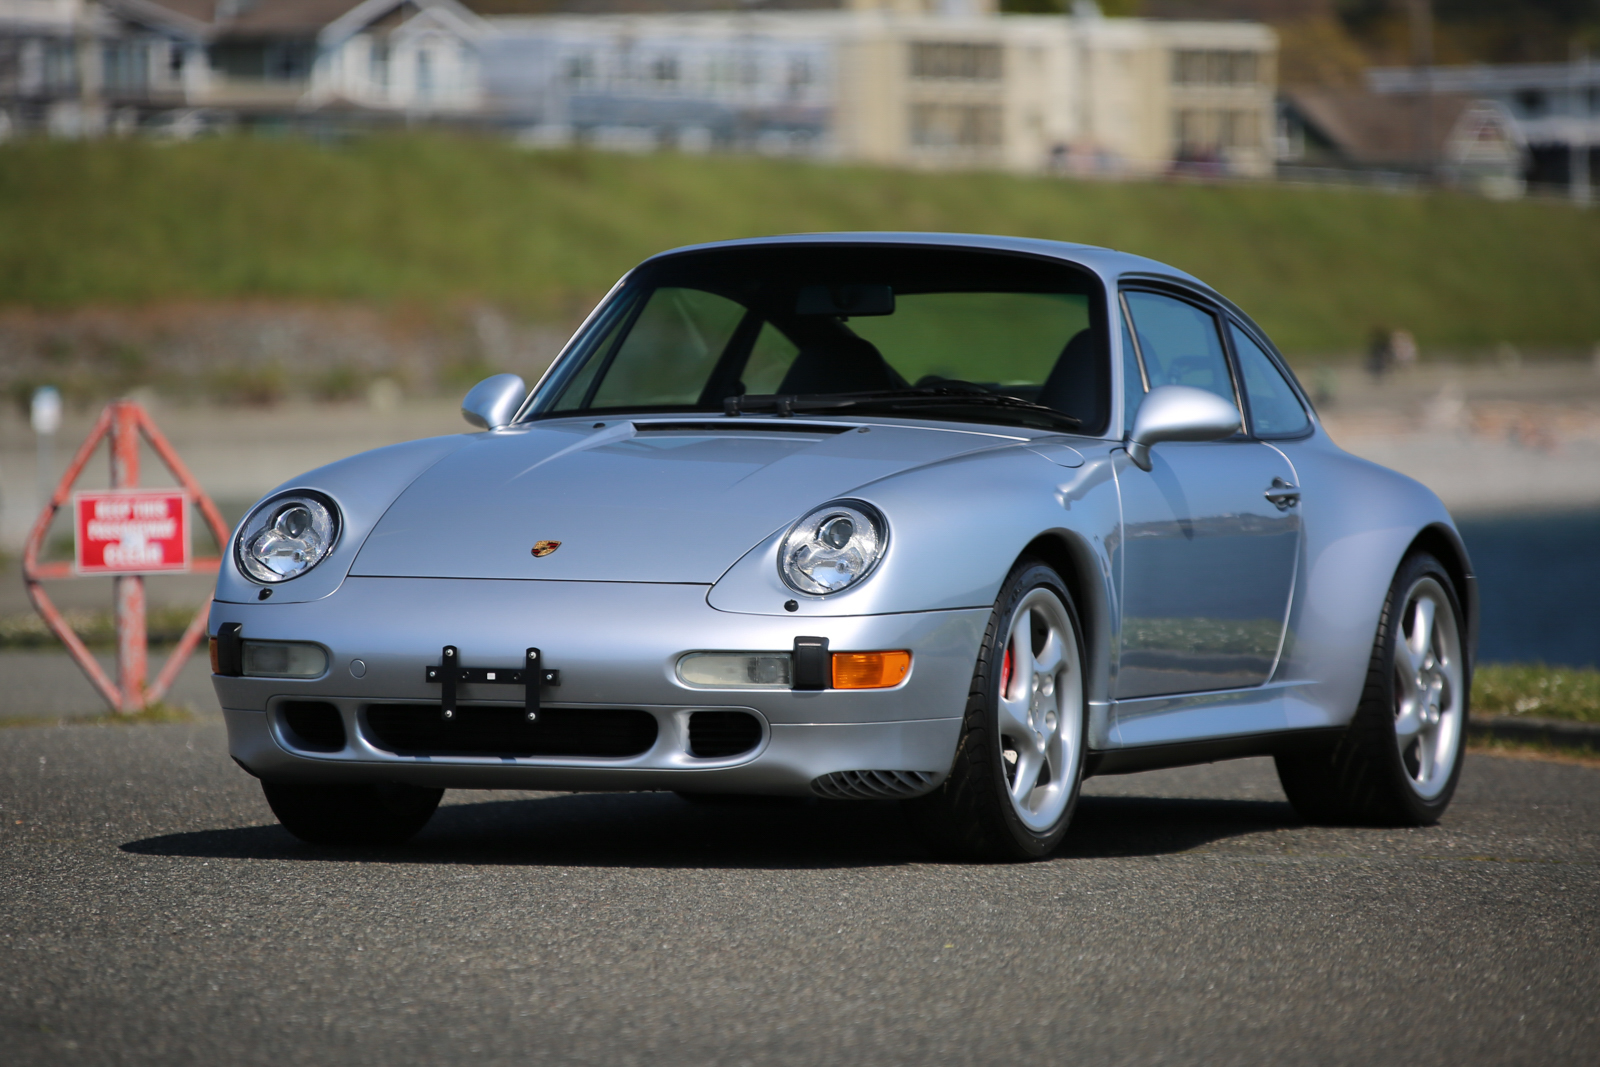 1996 Porsche 993 911 Carrera 4 S For Sale Silver Arrow